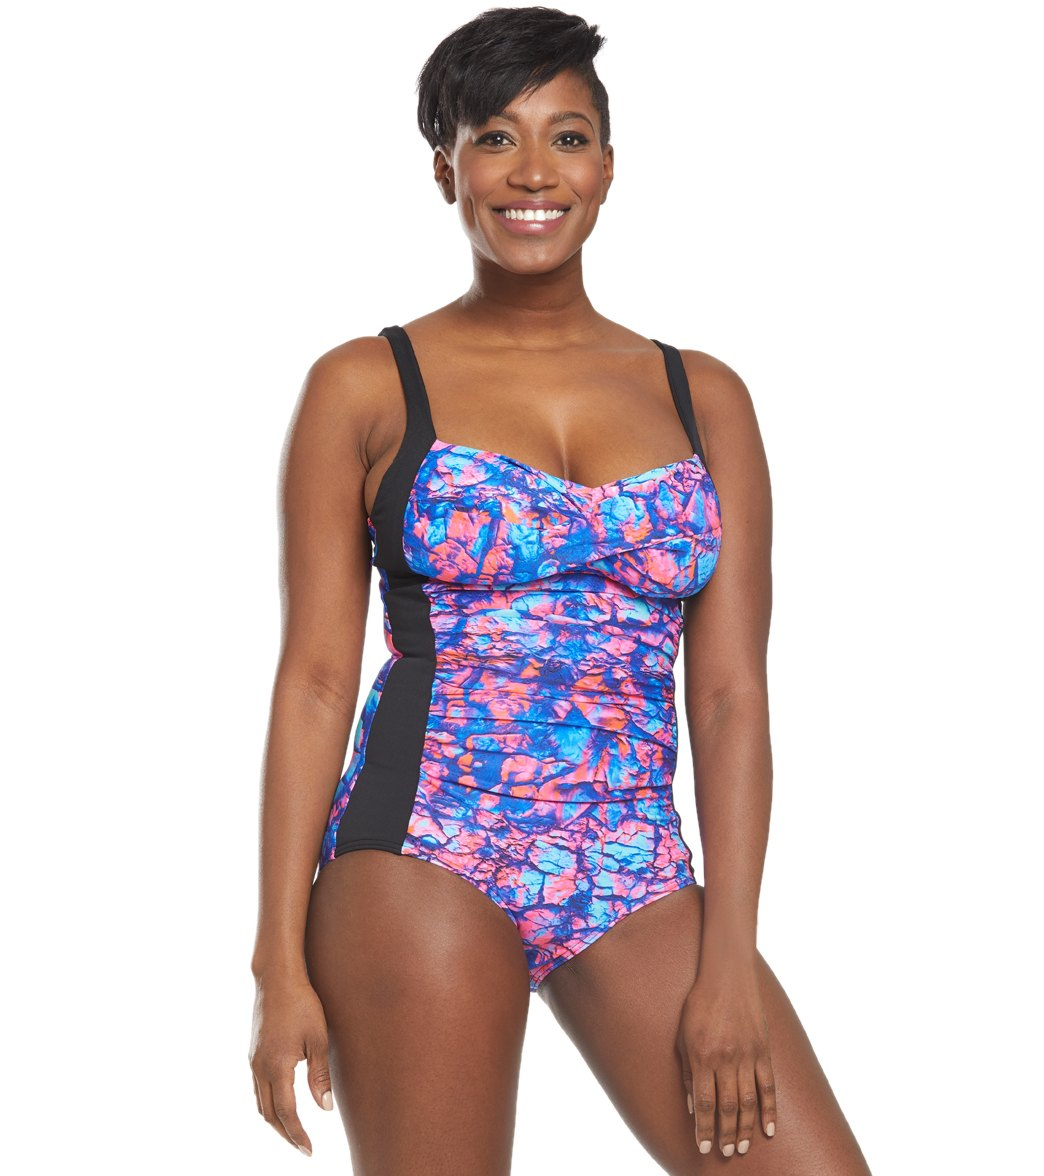 Funkita Women's Rusted Ruched One Piece Swimsuit